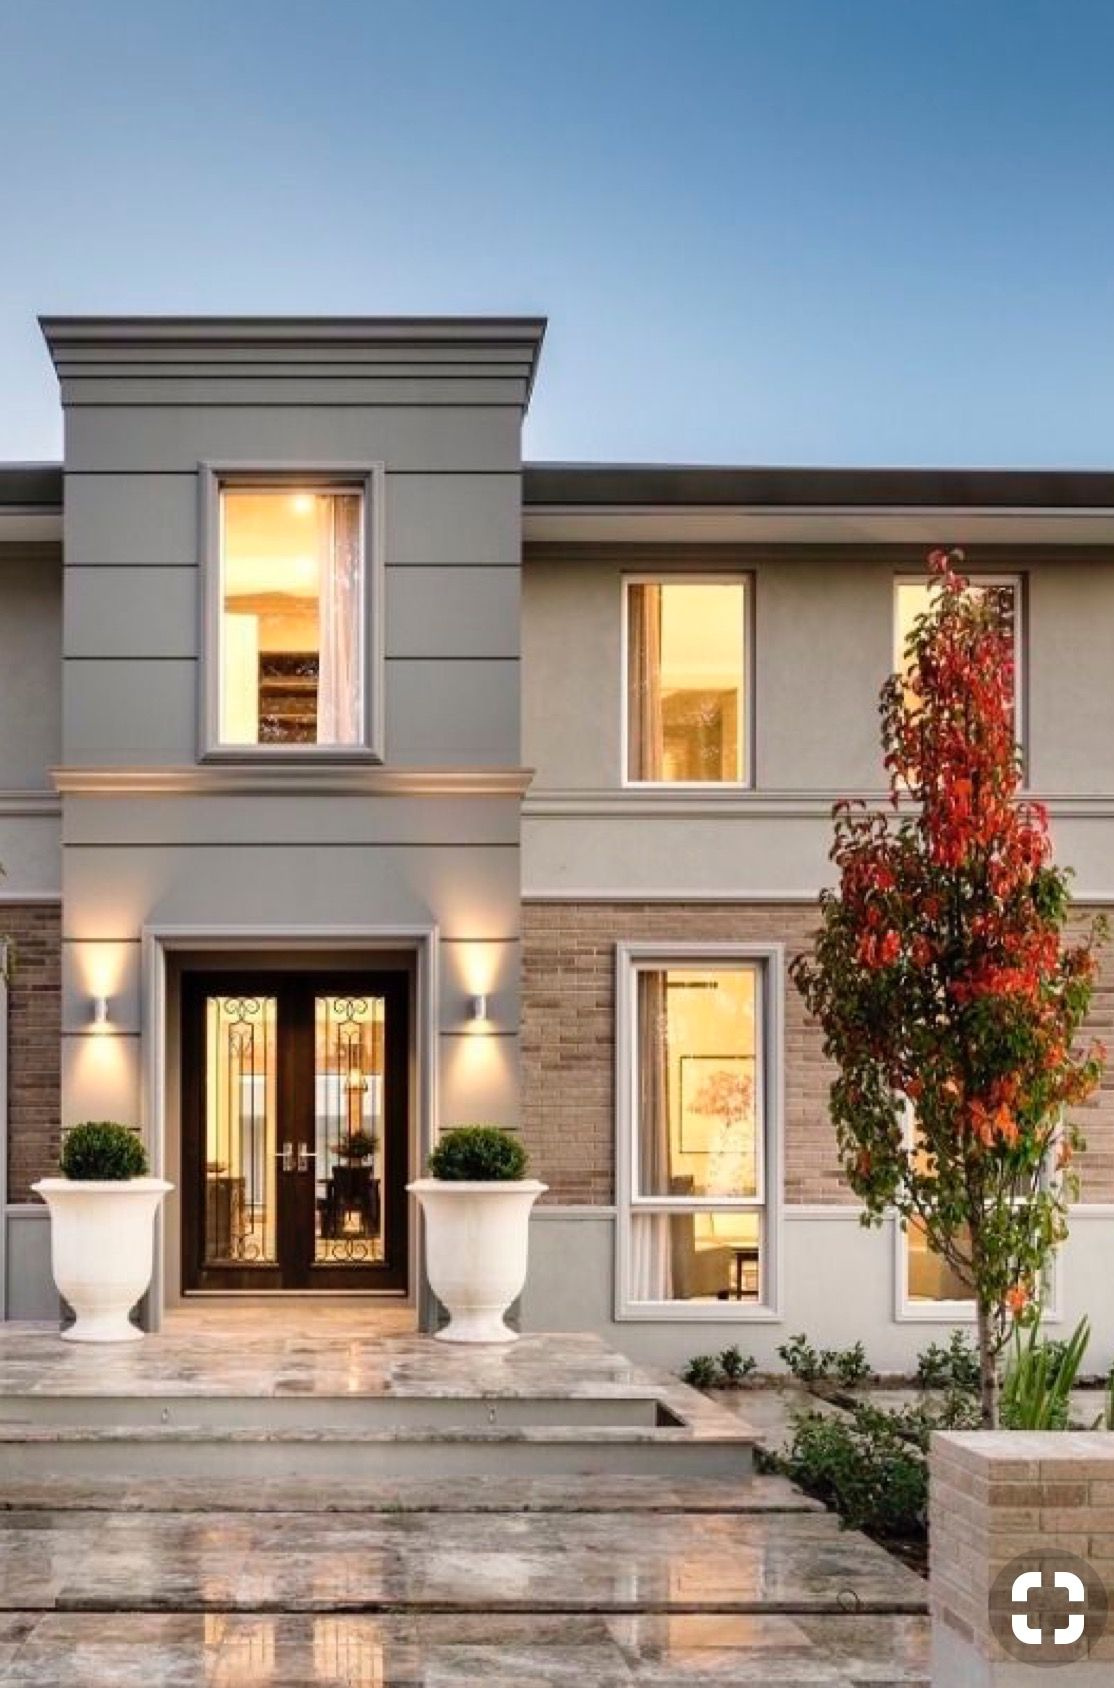 Explore Classic House Exterior And More!